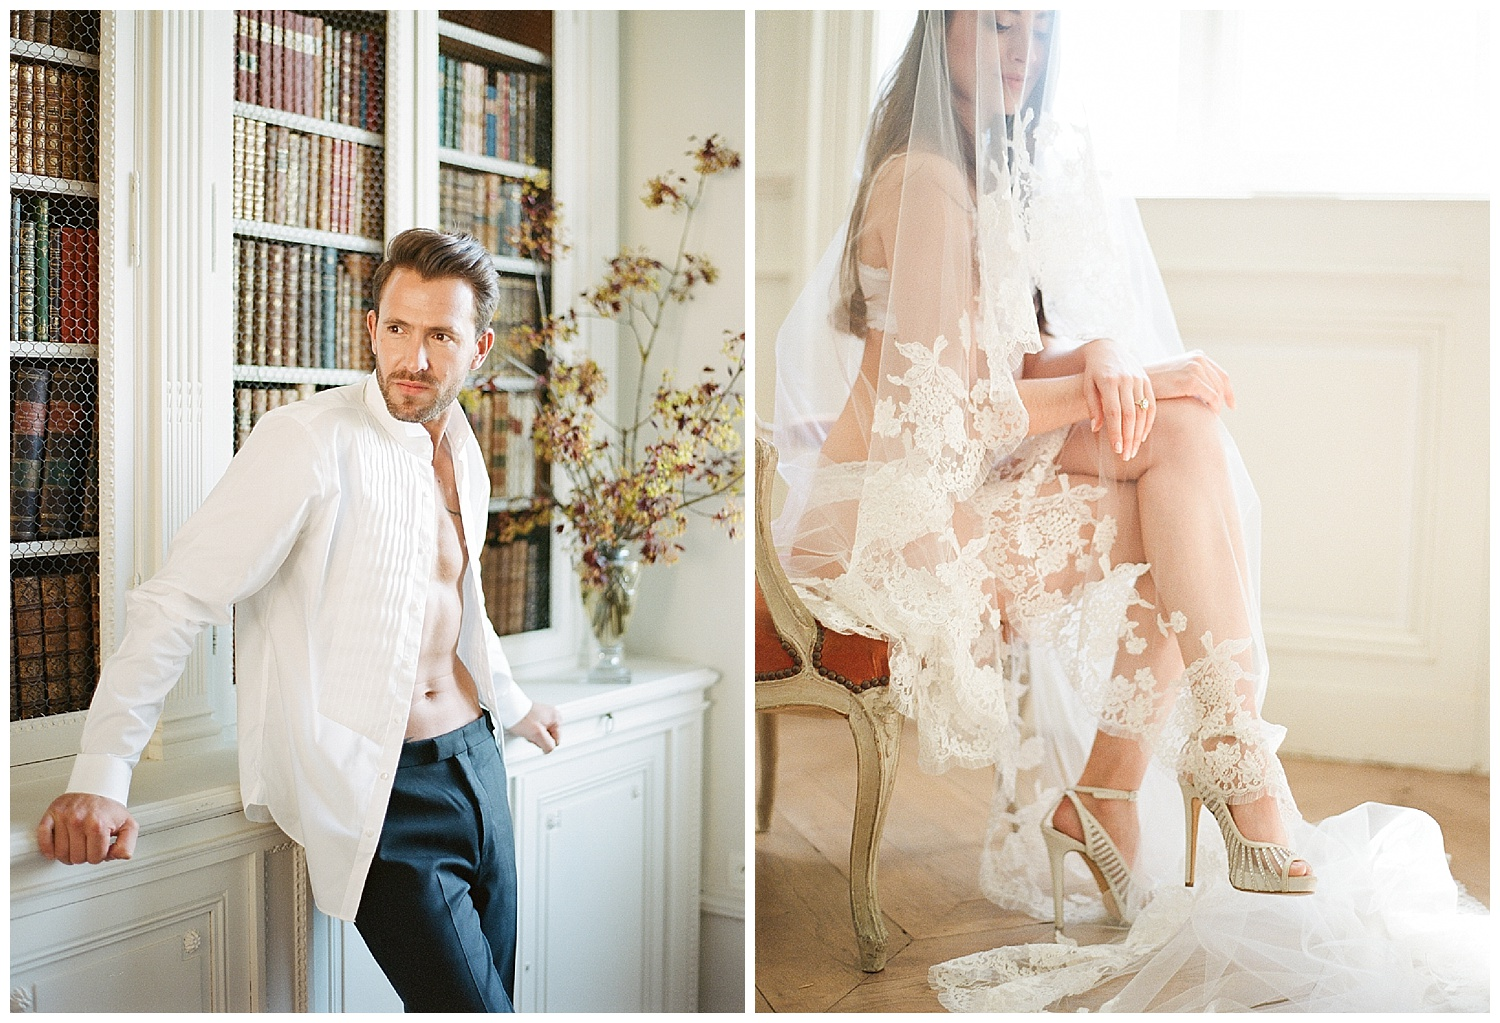 Bride and groom boudoir before the wedding ceremony; Sylvie Gil Photography